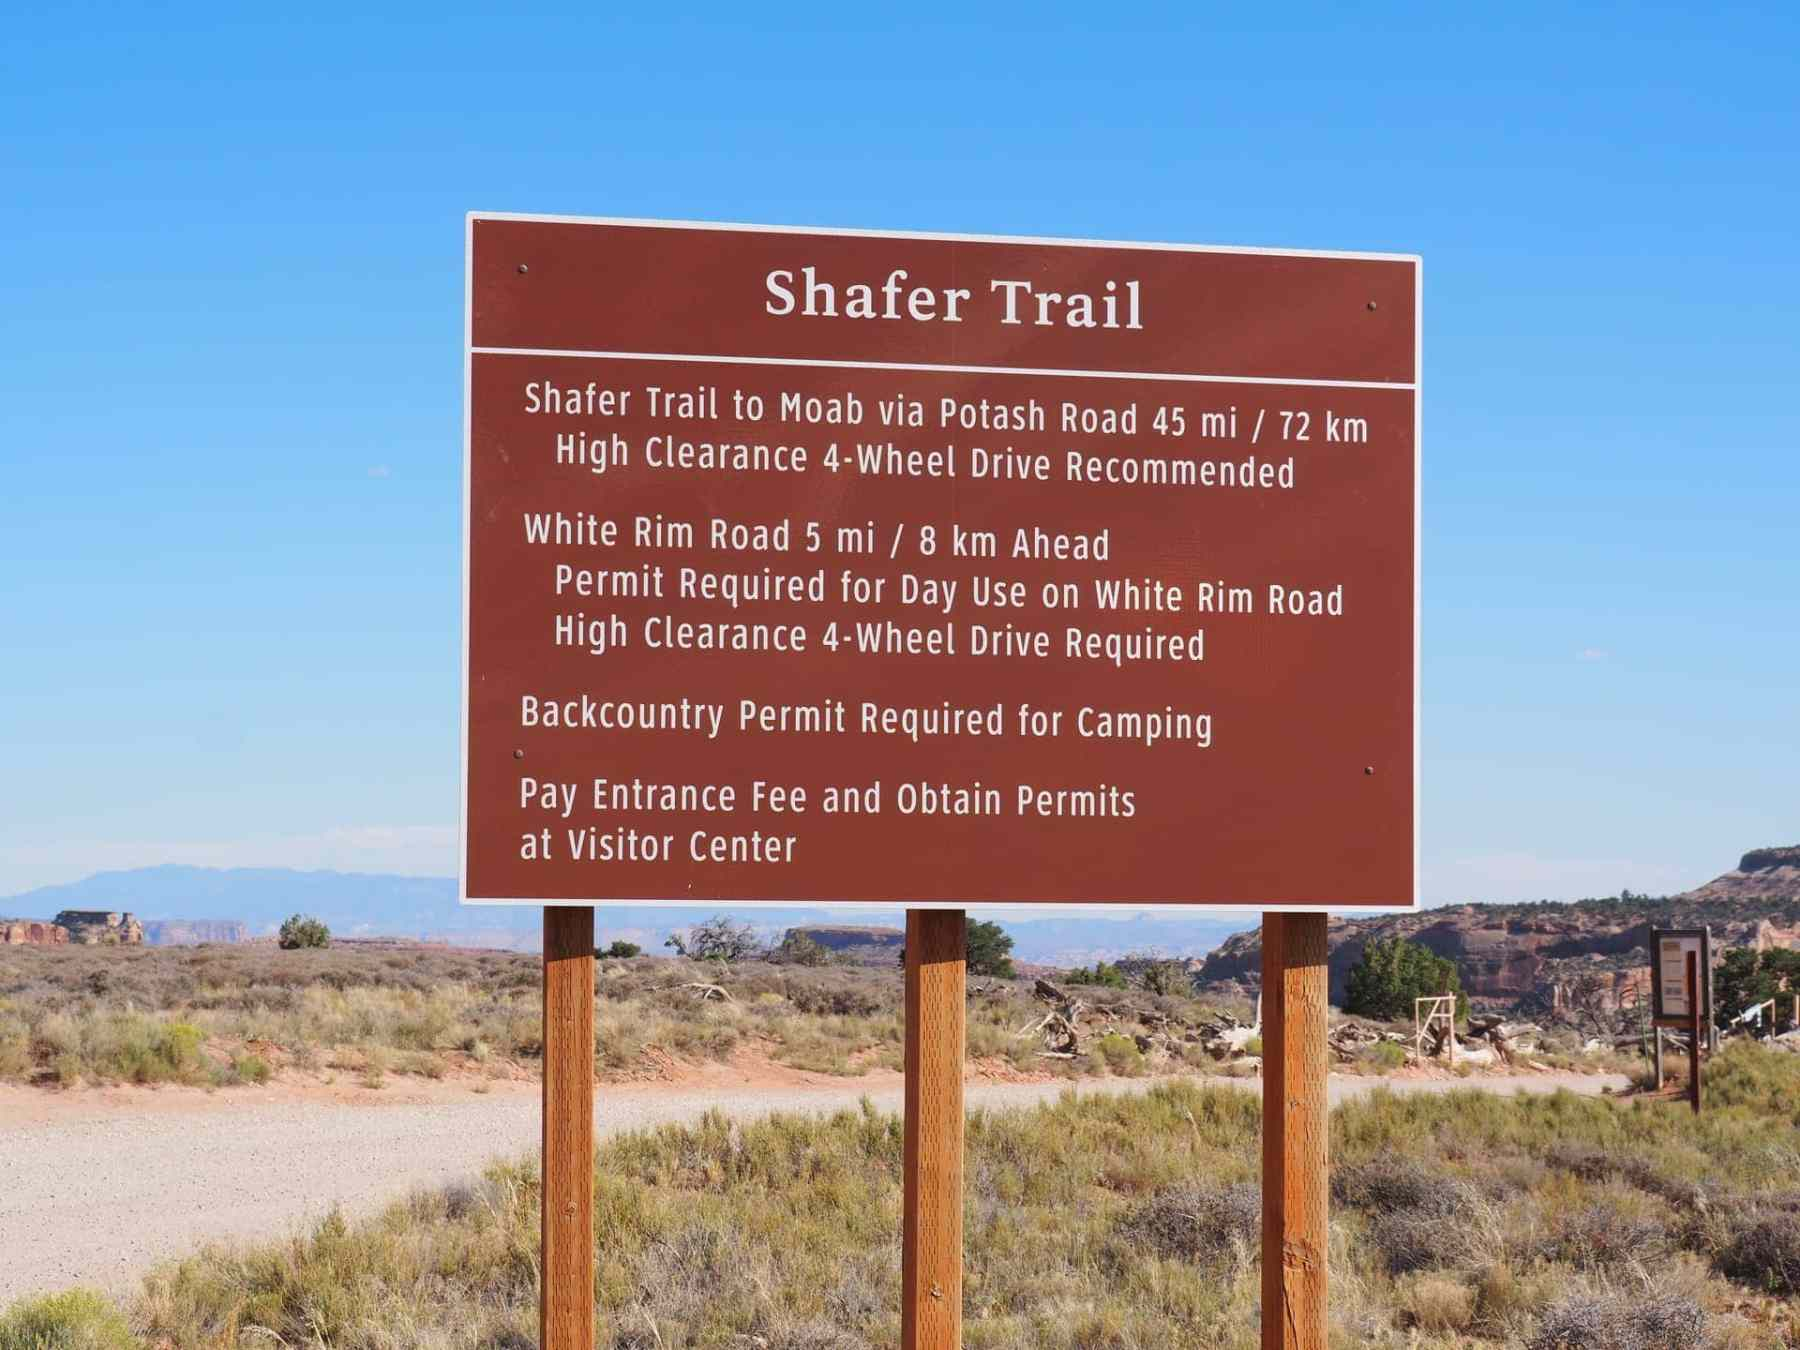 Shafer Trail sign and information